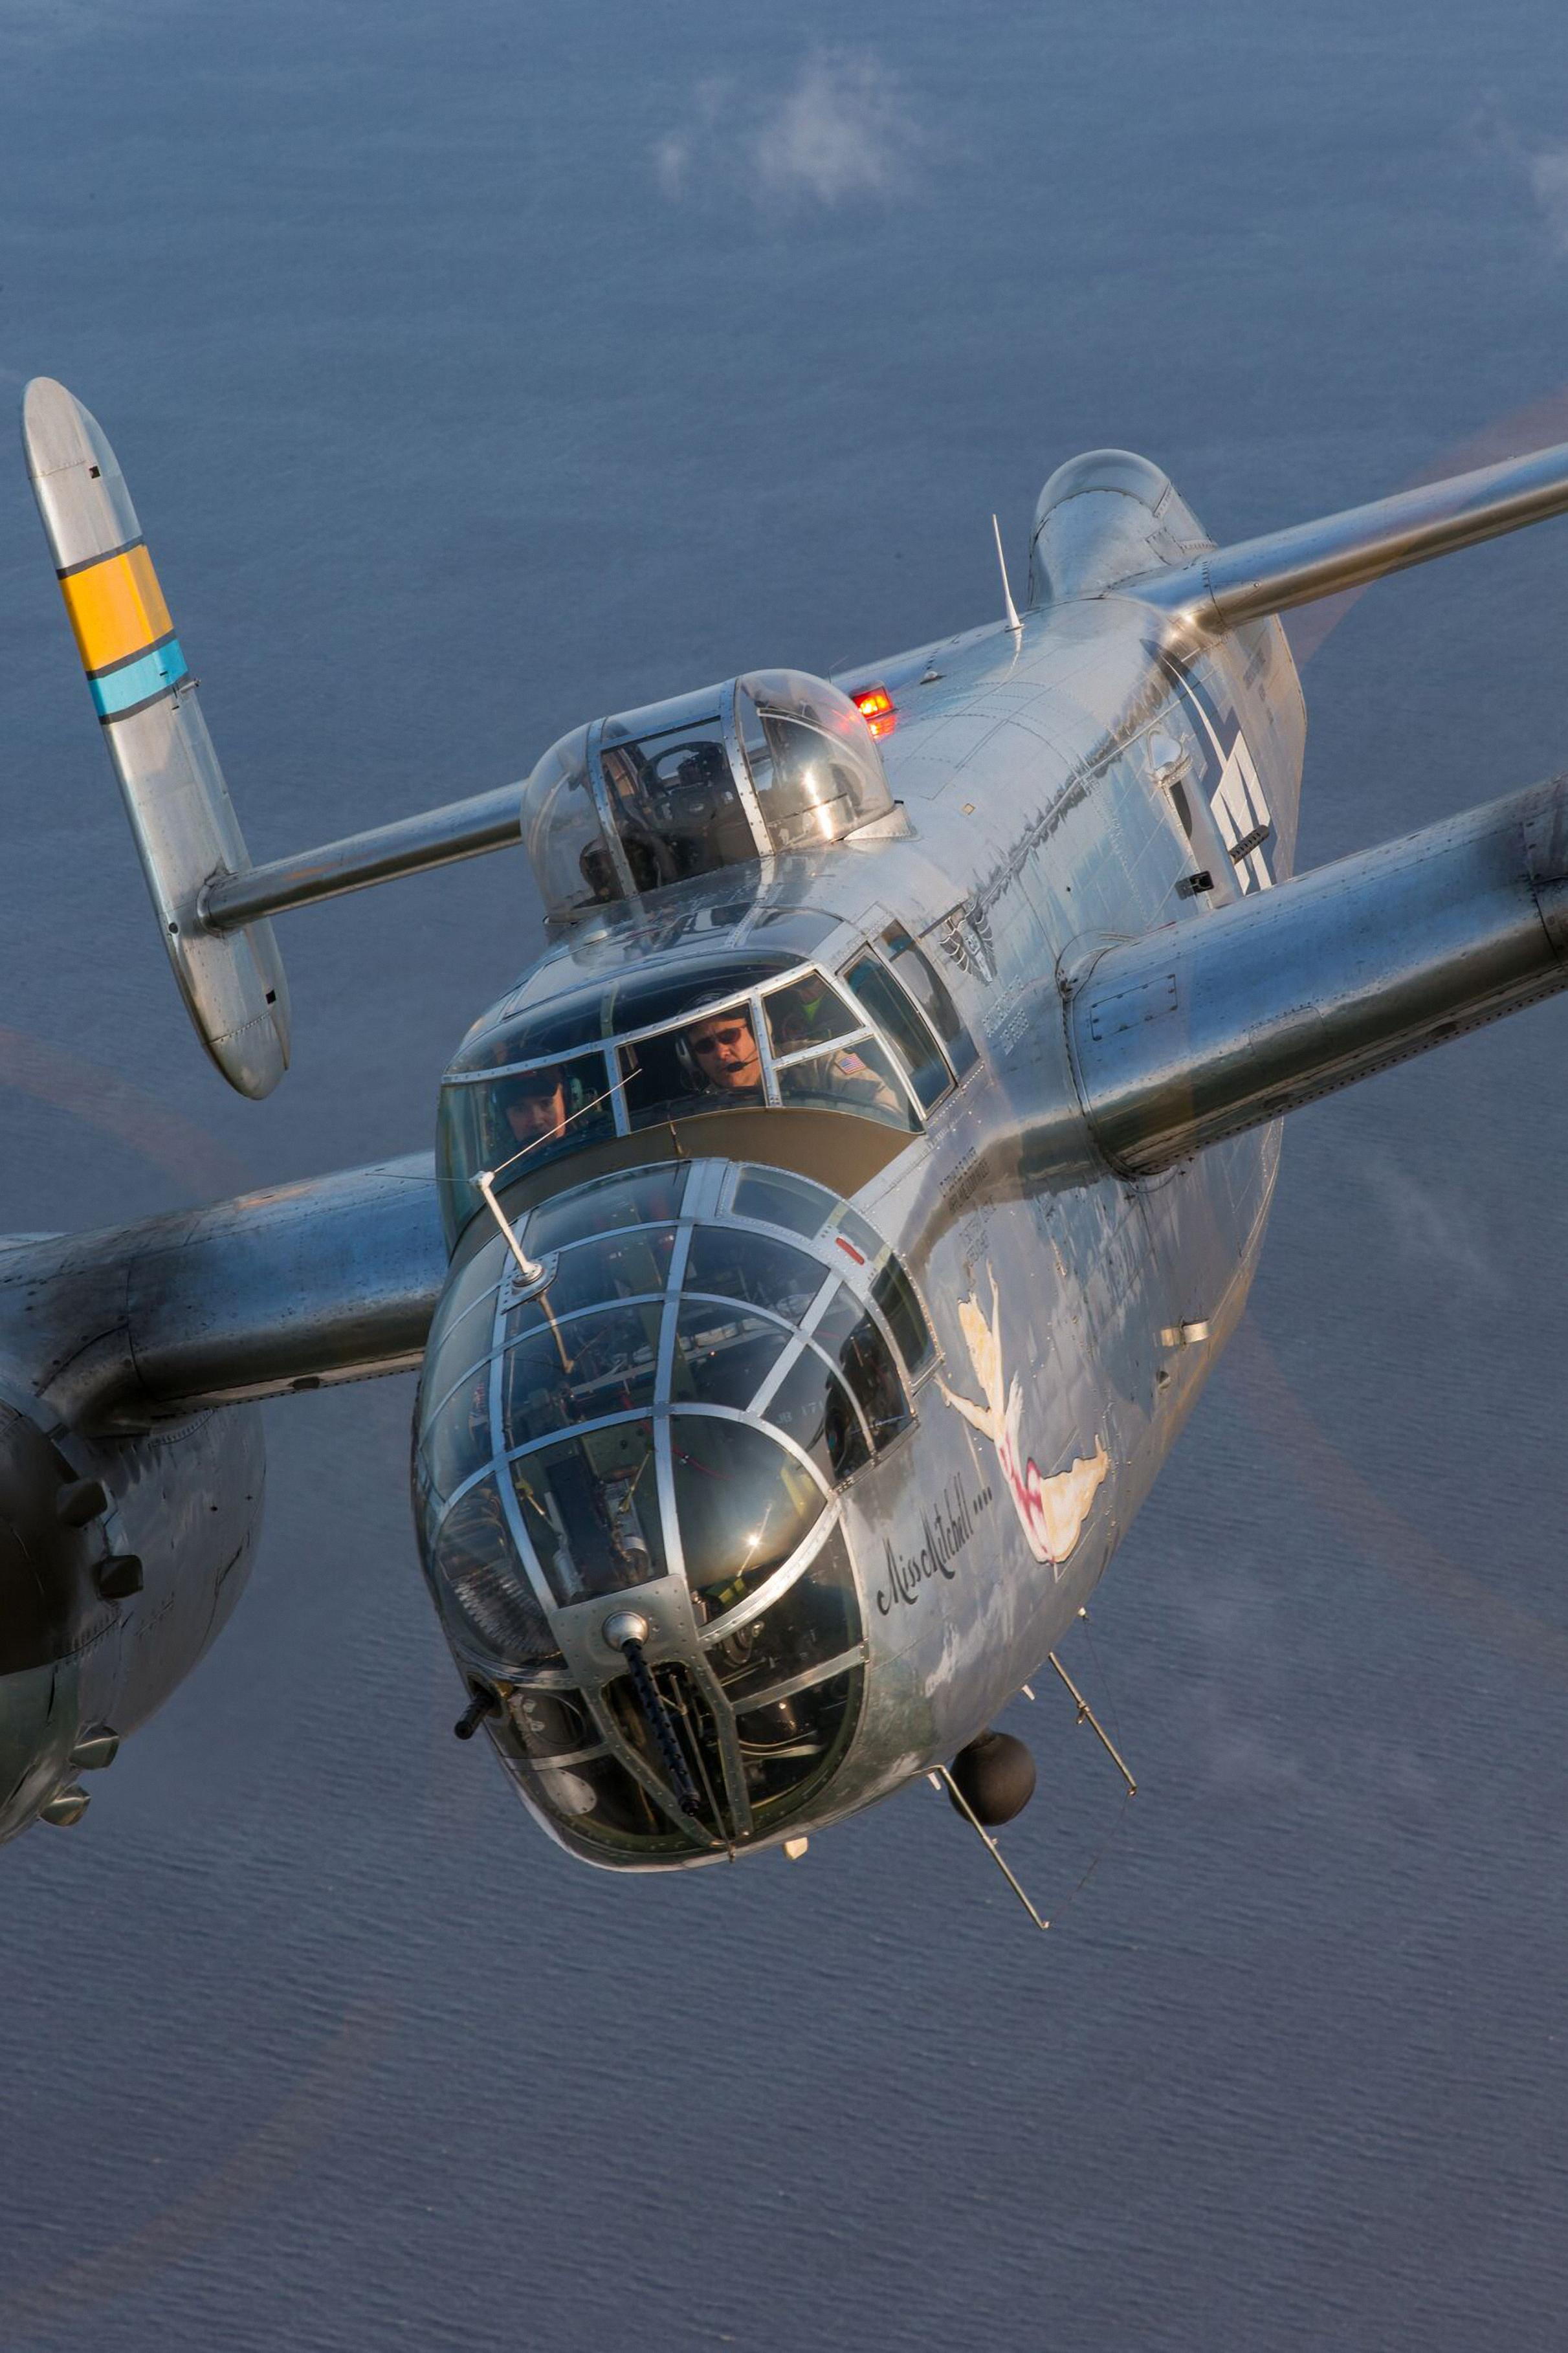 A Commemorative Air Force B-25 flies at Oshkosh in 2014.